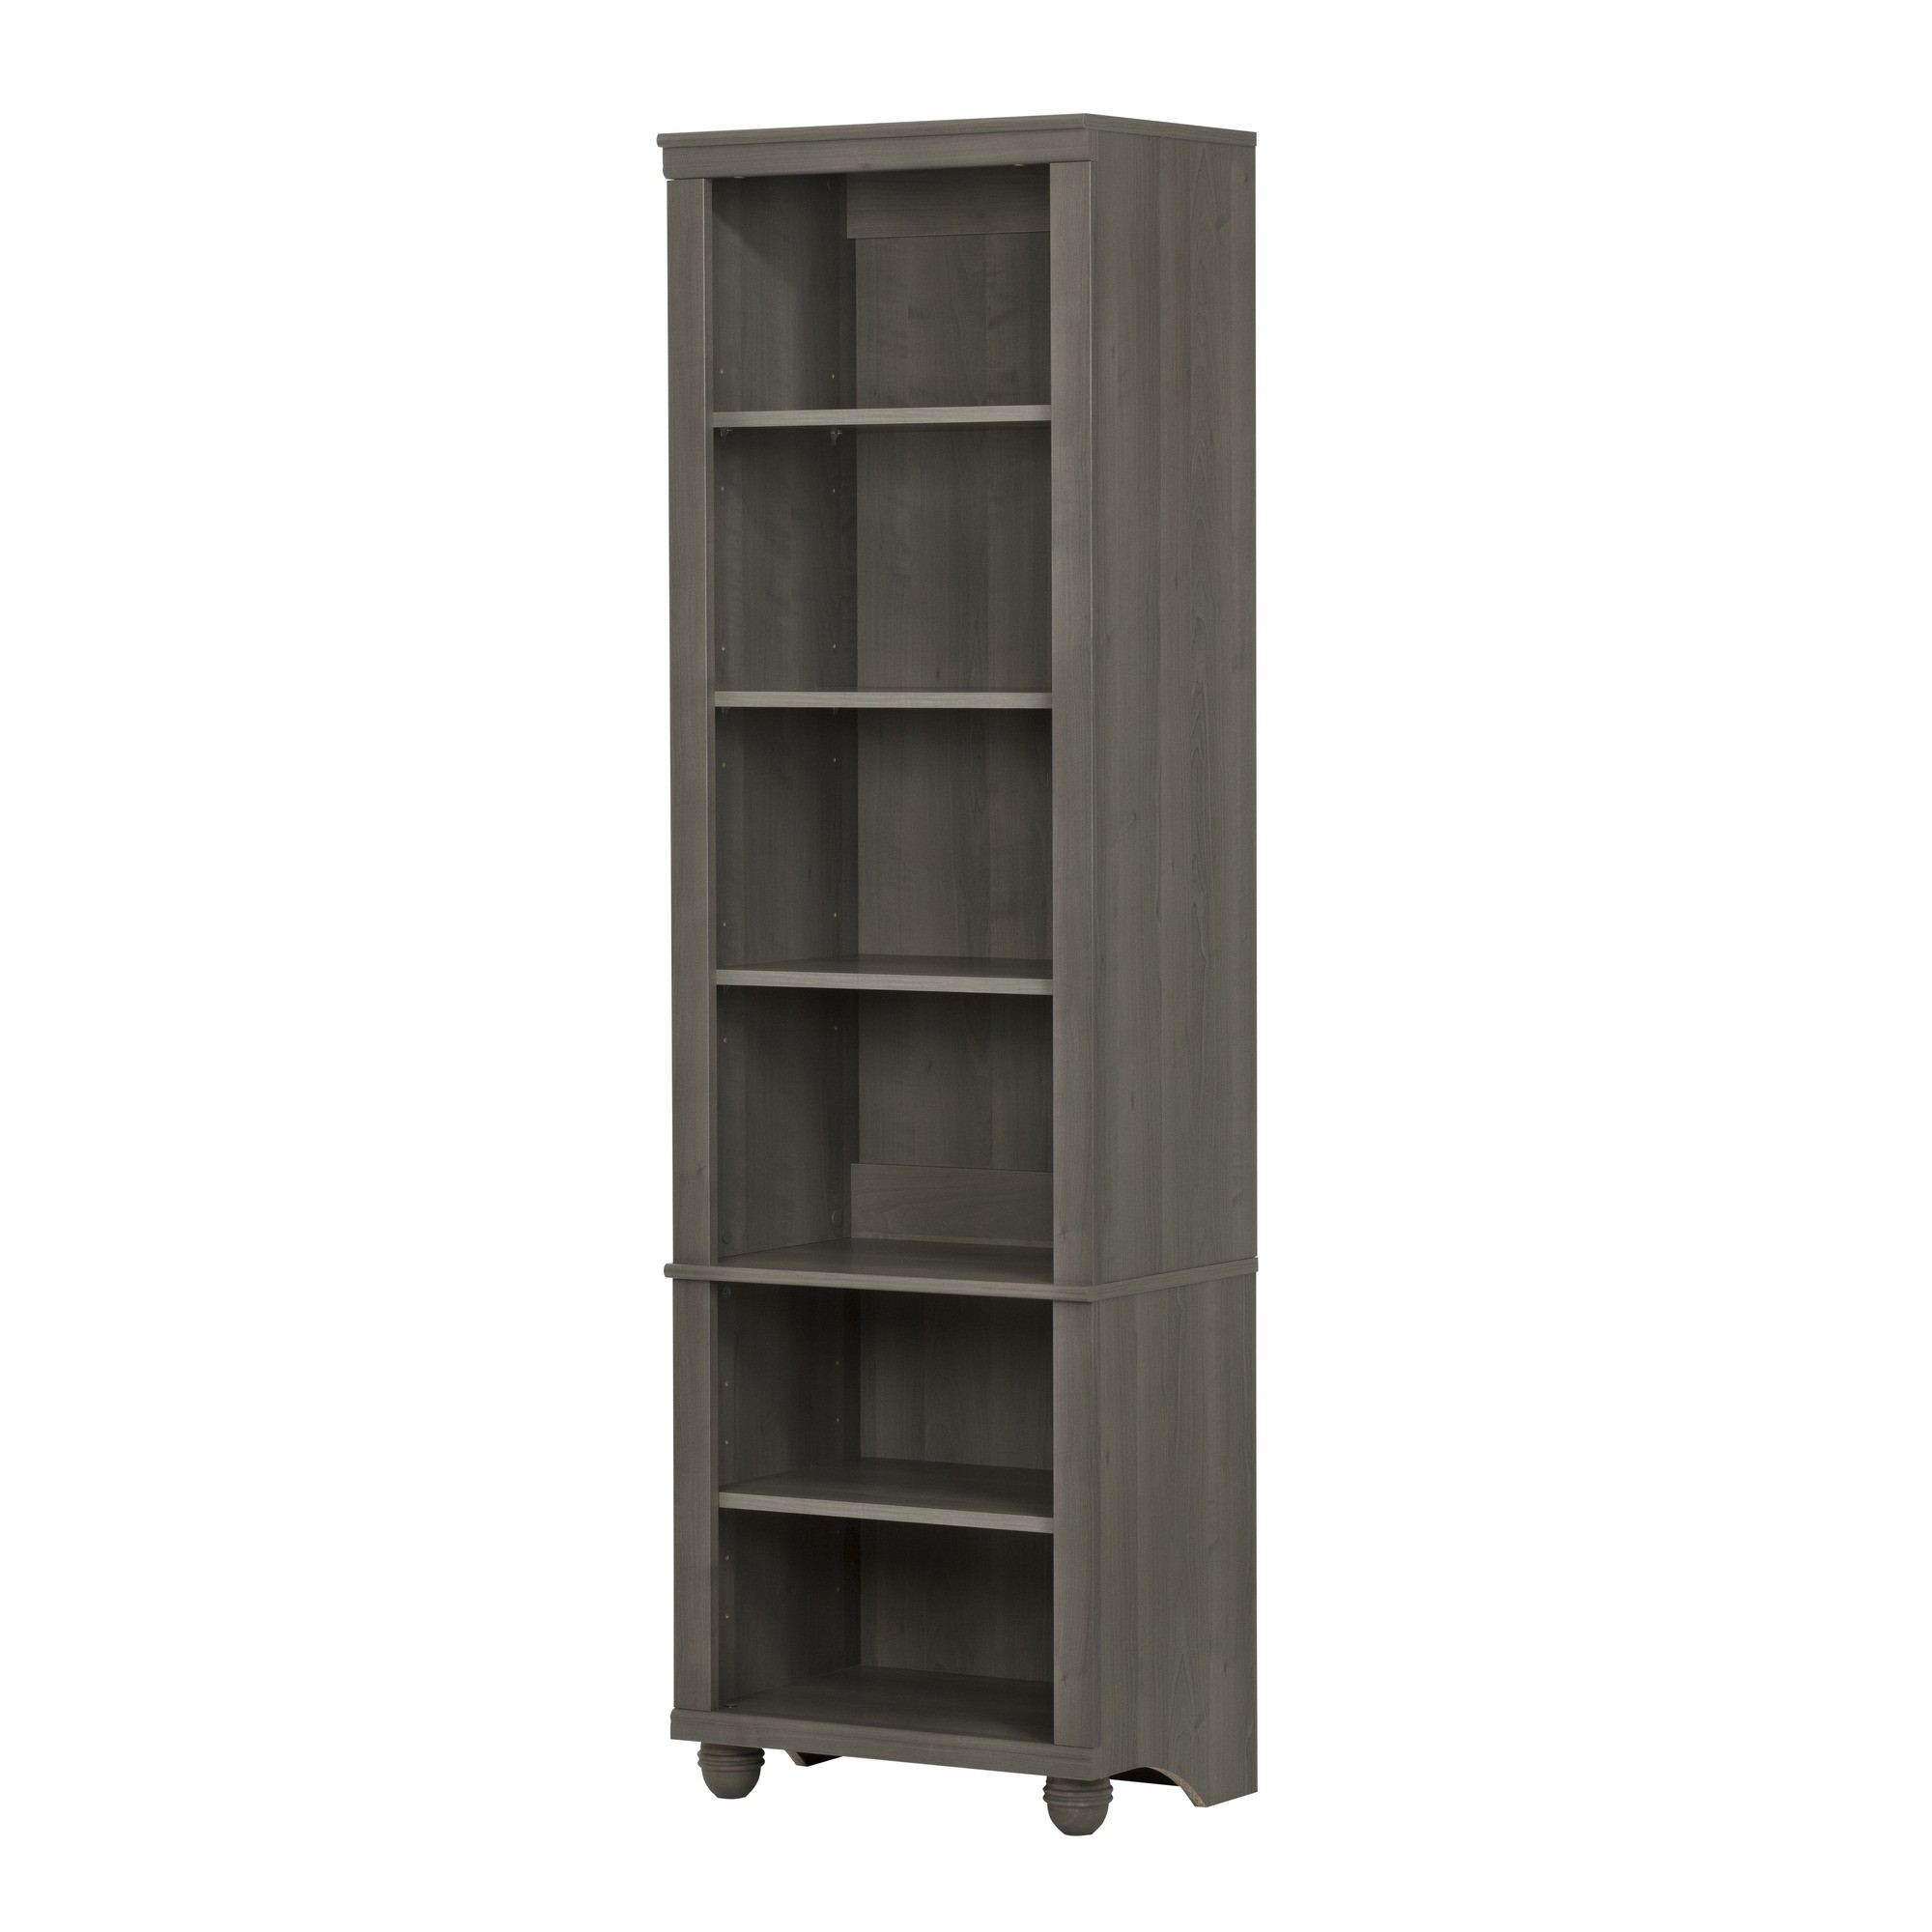 axess bookcase collection qiwgaxr demands will south shore is size standard a storage that your shelf handle